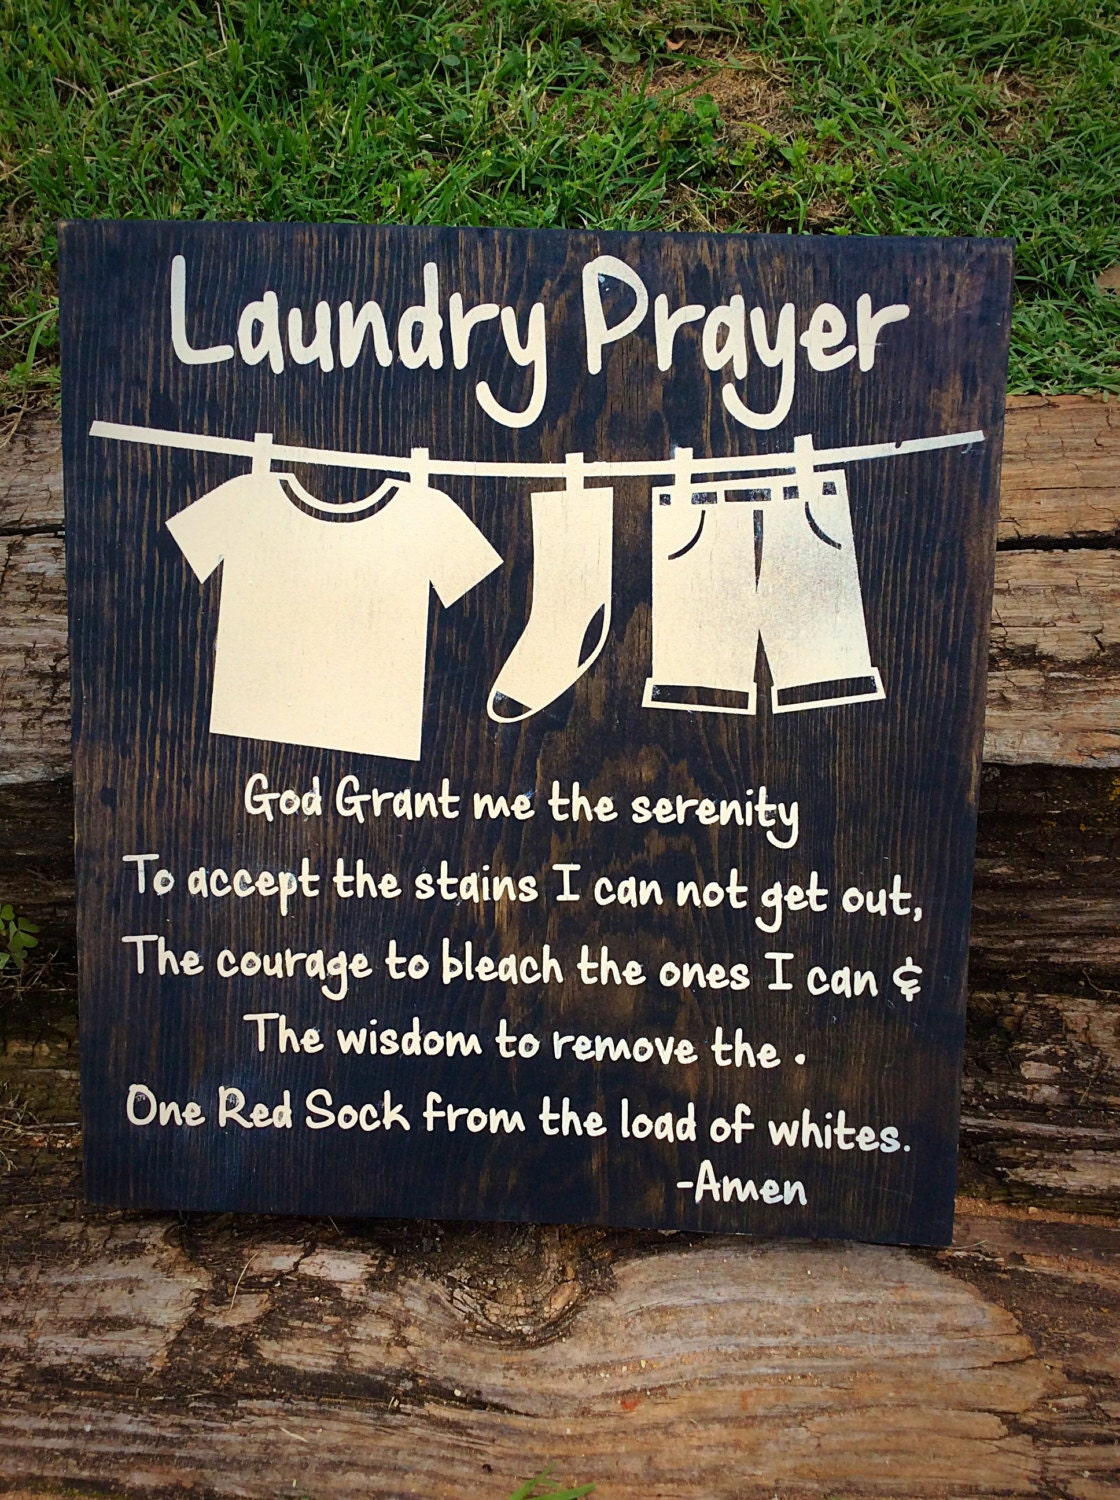 Funny Laundry Room Signs Funny Laundry Room Sign Laundry Room Decor Christmas Gifts